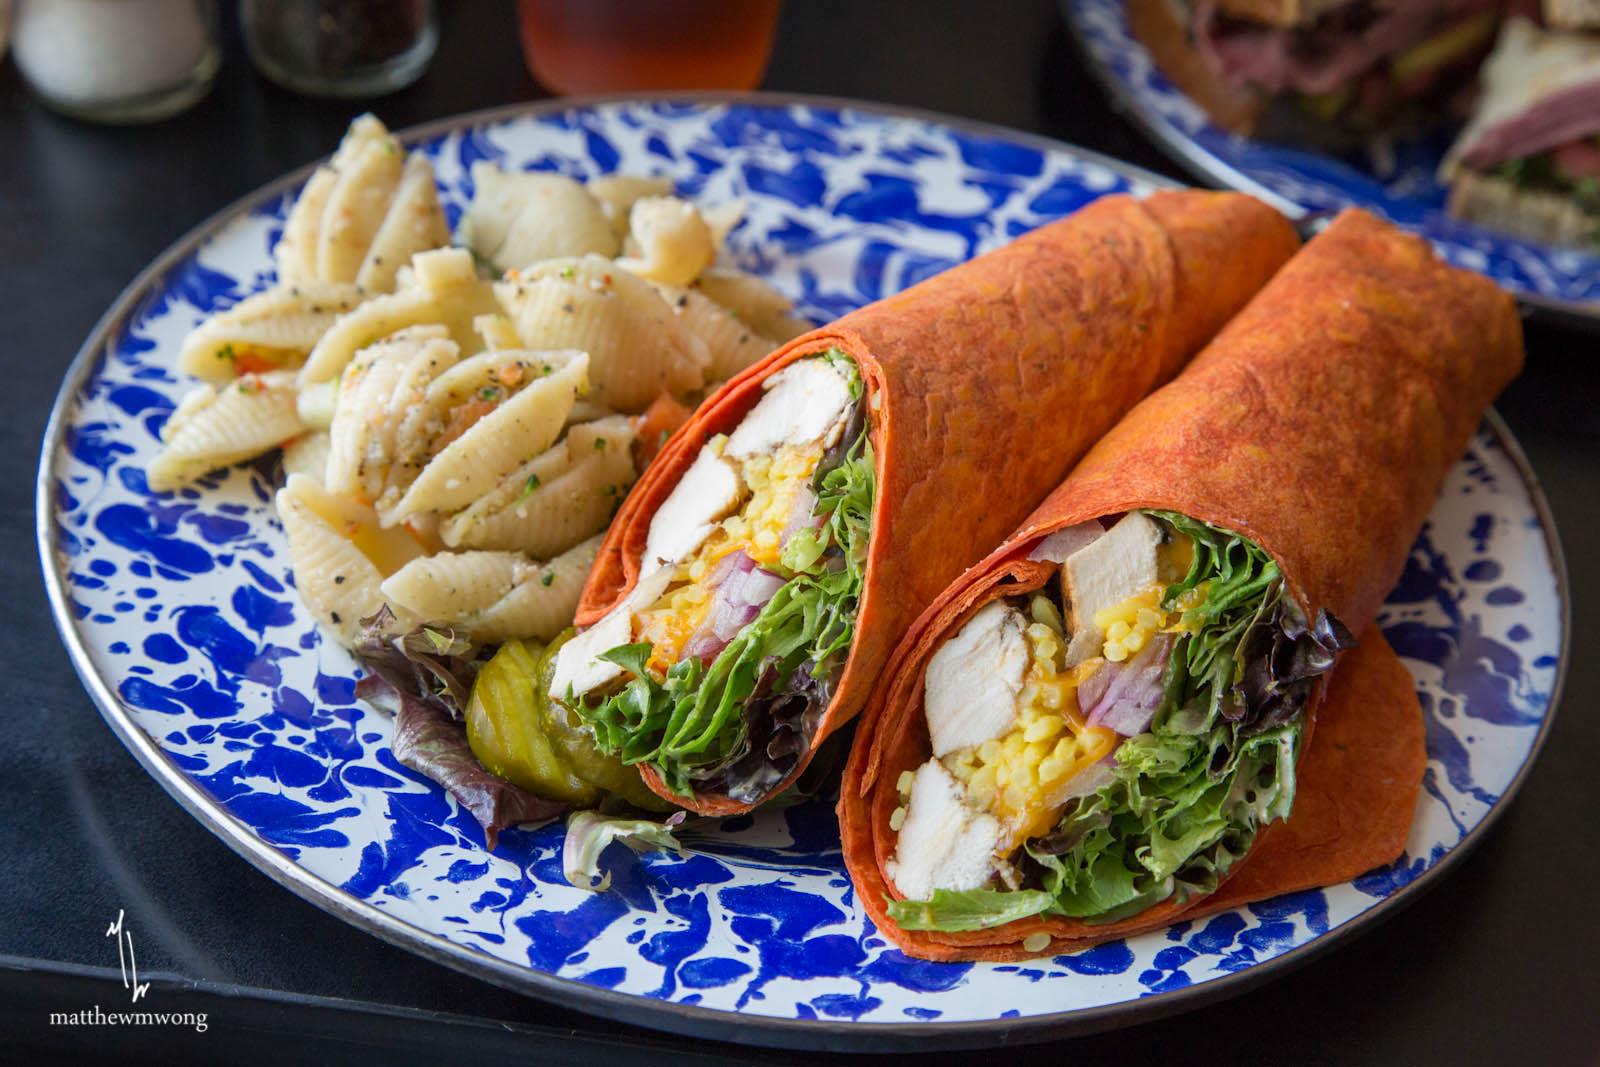 Spicy Chicken Wrap, Grilled chicken with melted cheddar, yellow rice, onions, tomatoes and mixed greens on a sundried tomato wrap with spicy ranch.